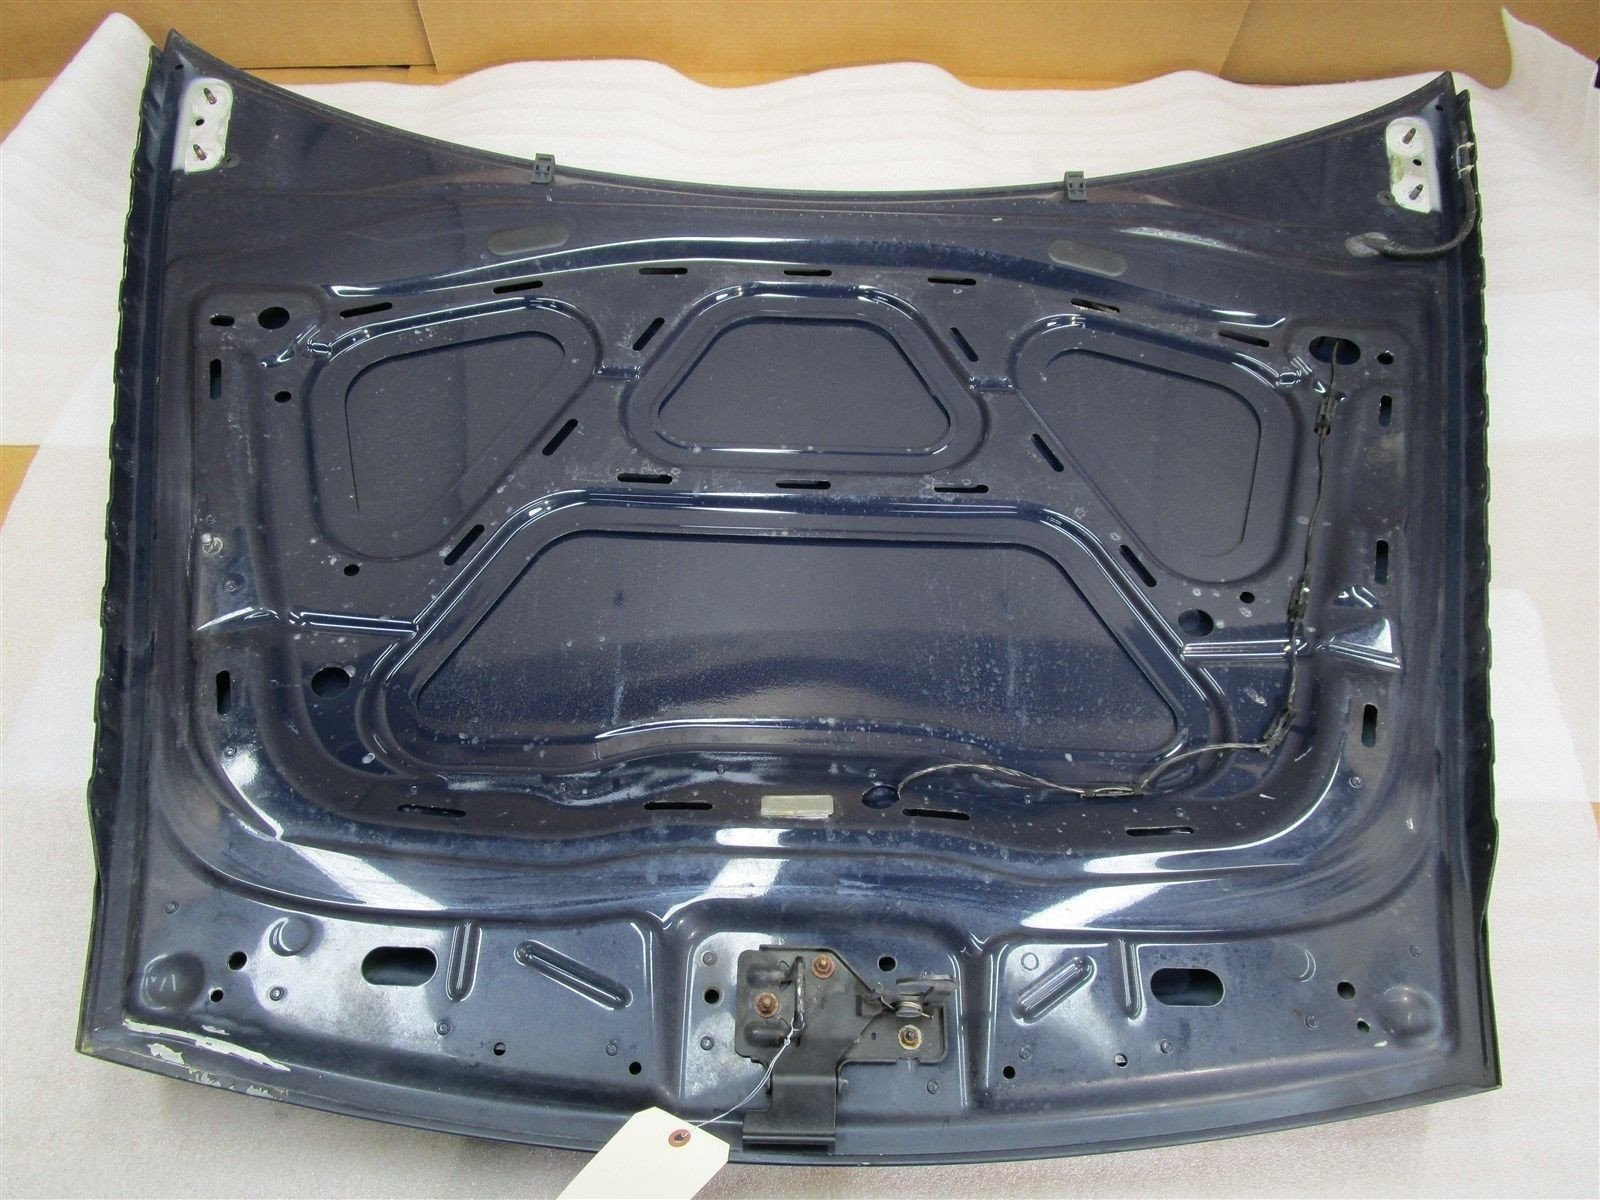 04 Cayenne S AWD Porsche 955 Blue Front HOOD LID COVER engine bay 71,063